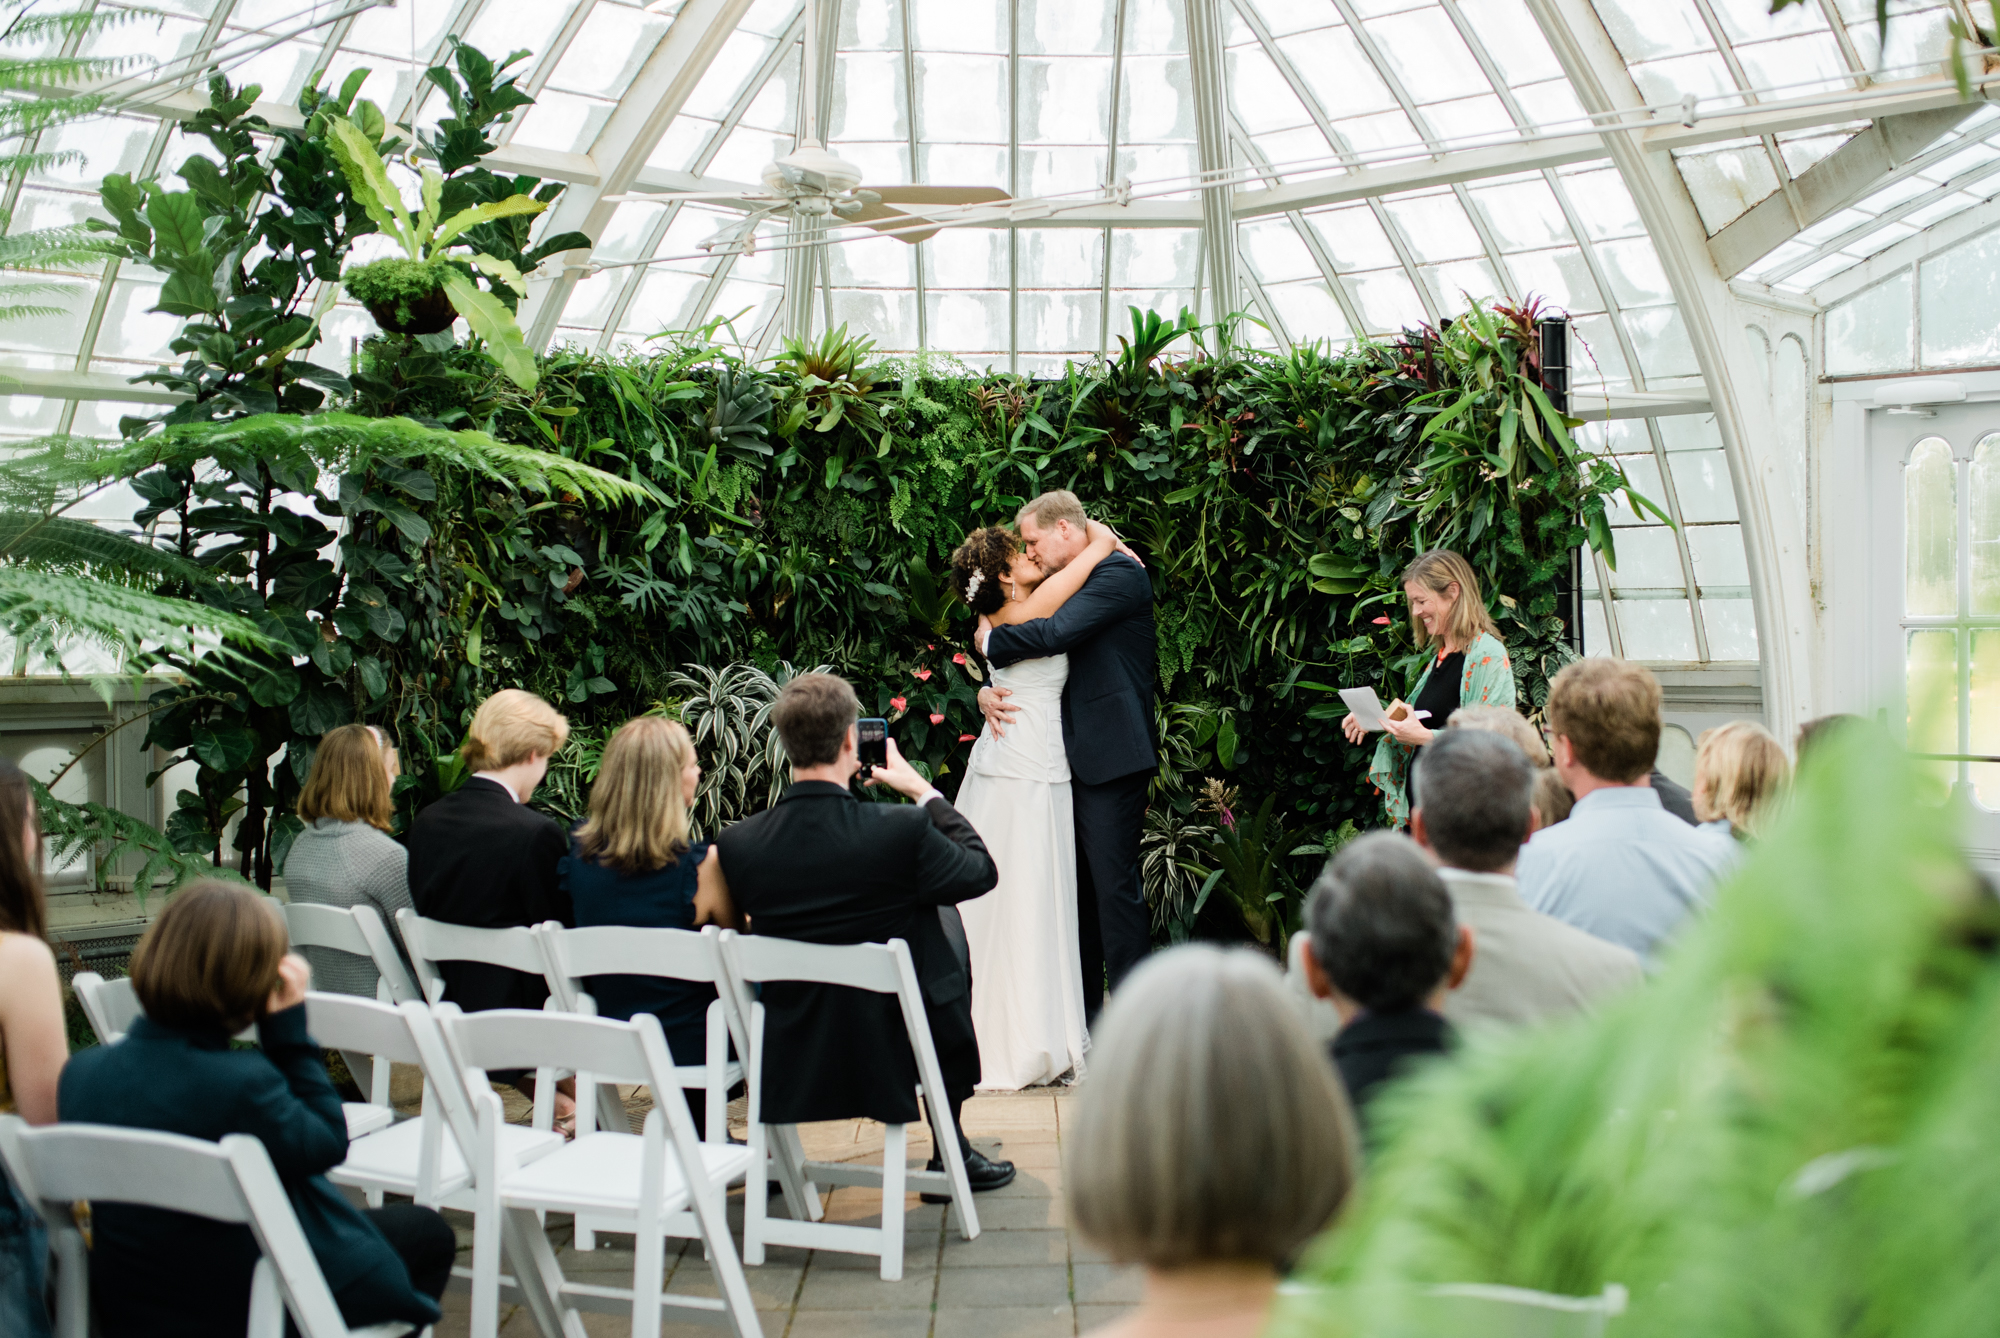 Conservatory_of_Flowers_San_Francisco_Wedding_031.jpg